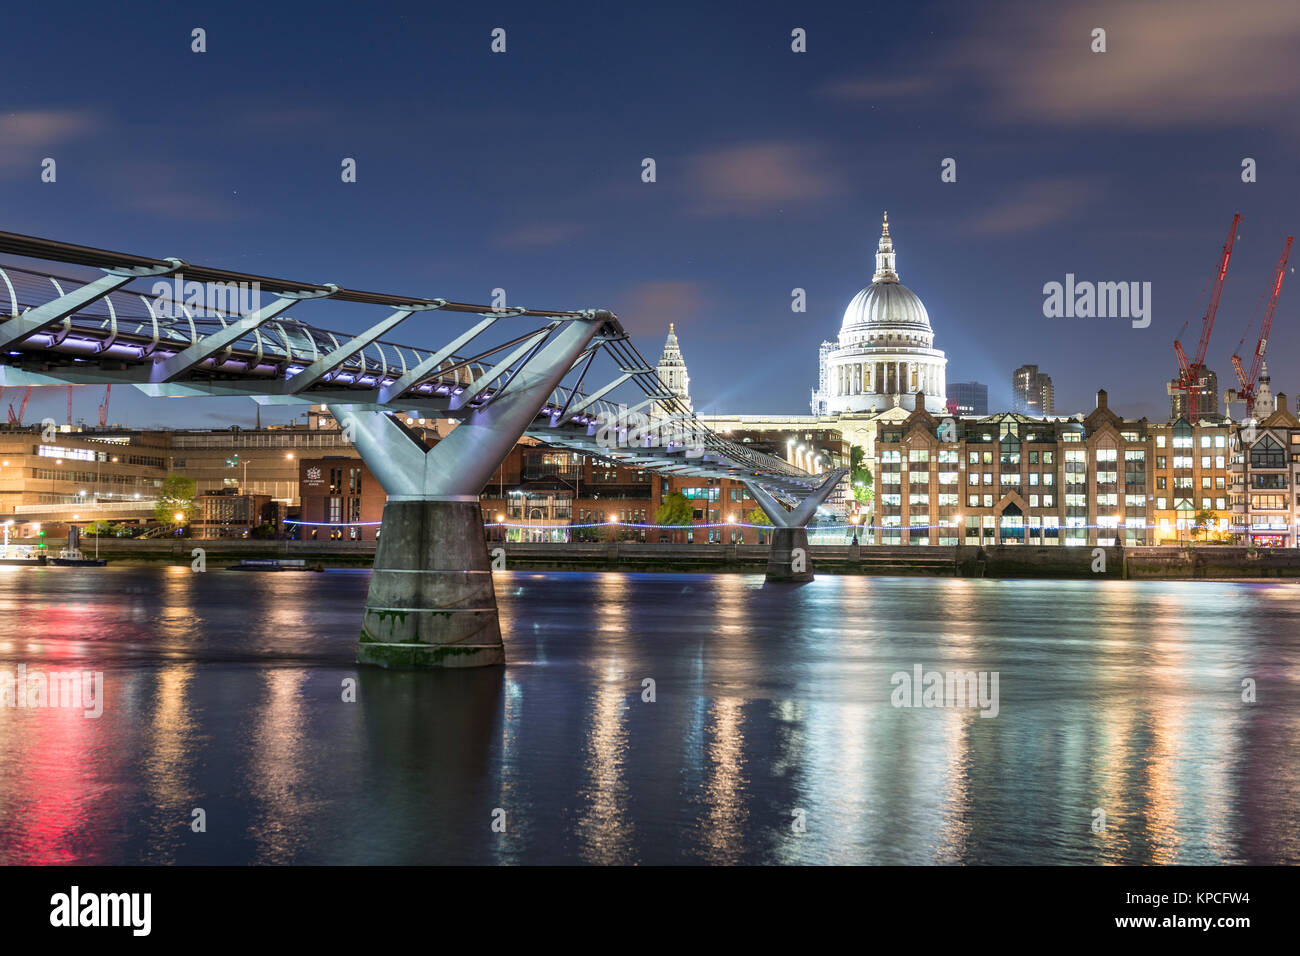 Millenium Bridge and St Paul's Cathedral by night, London, England, Great Britain - Stock Image